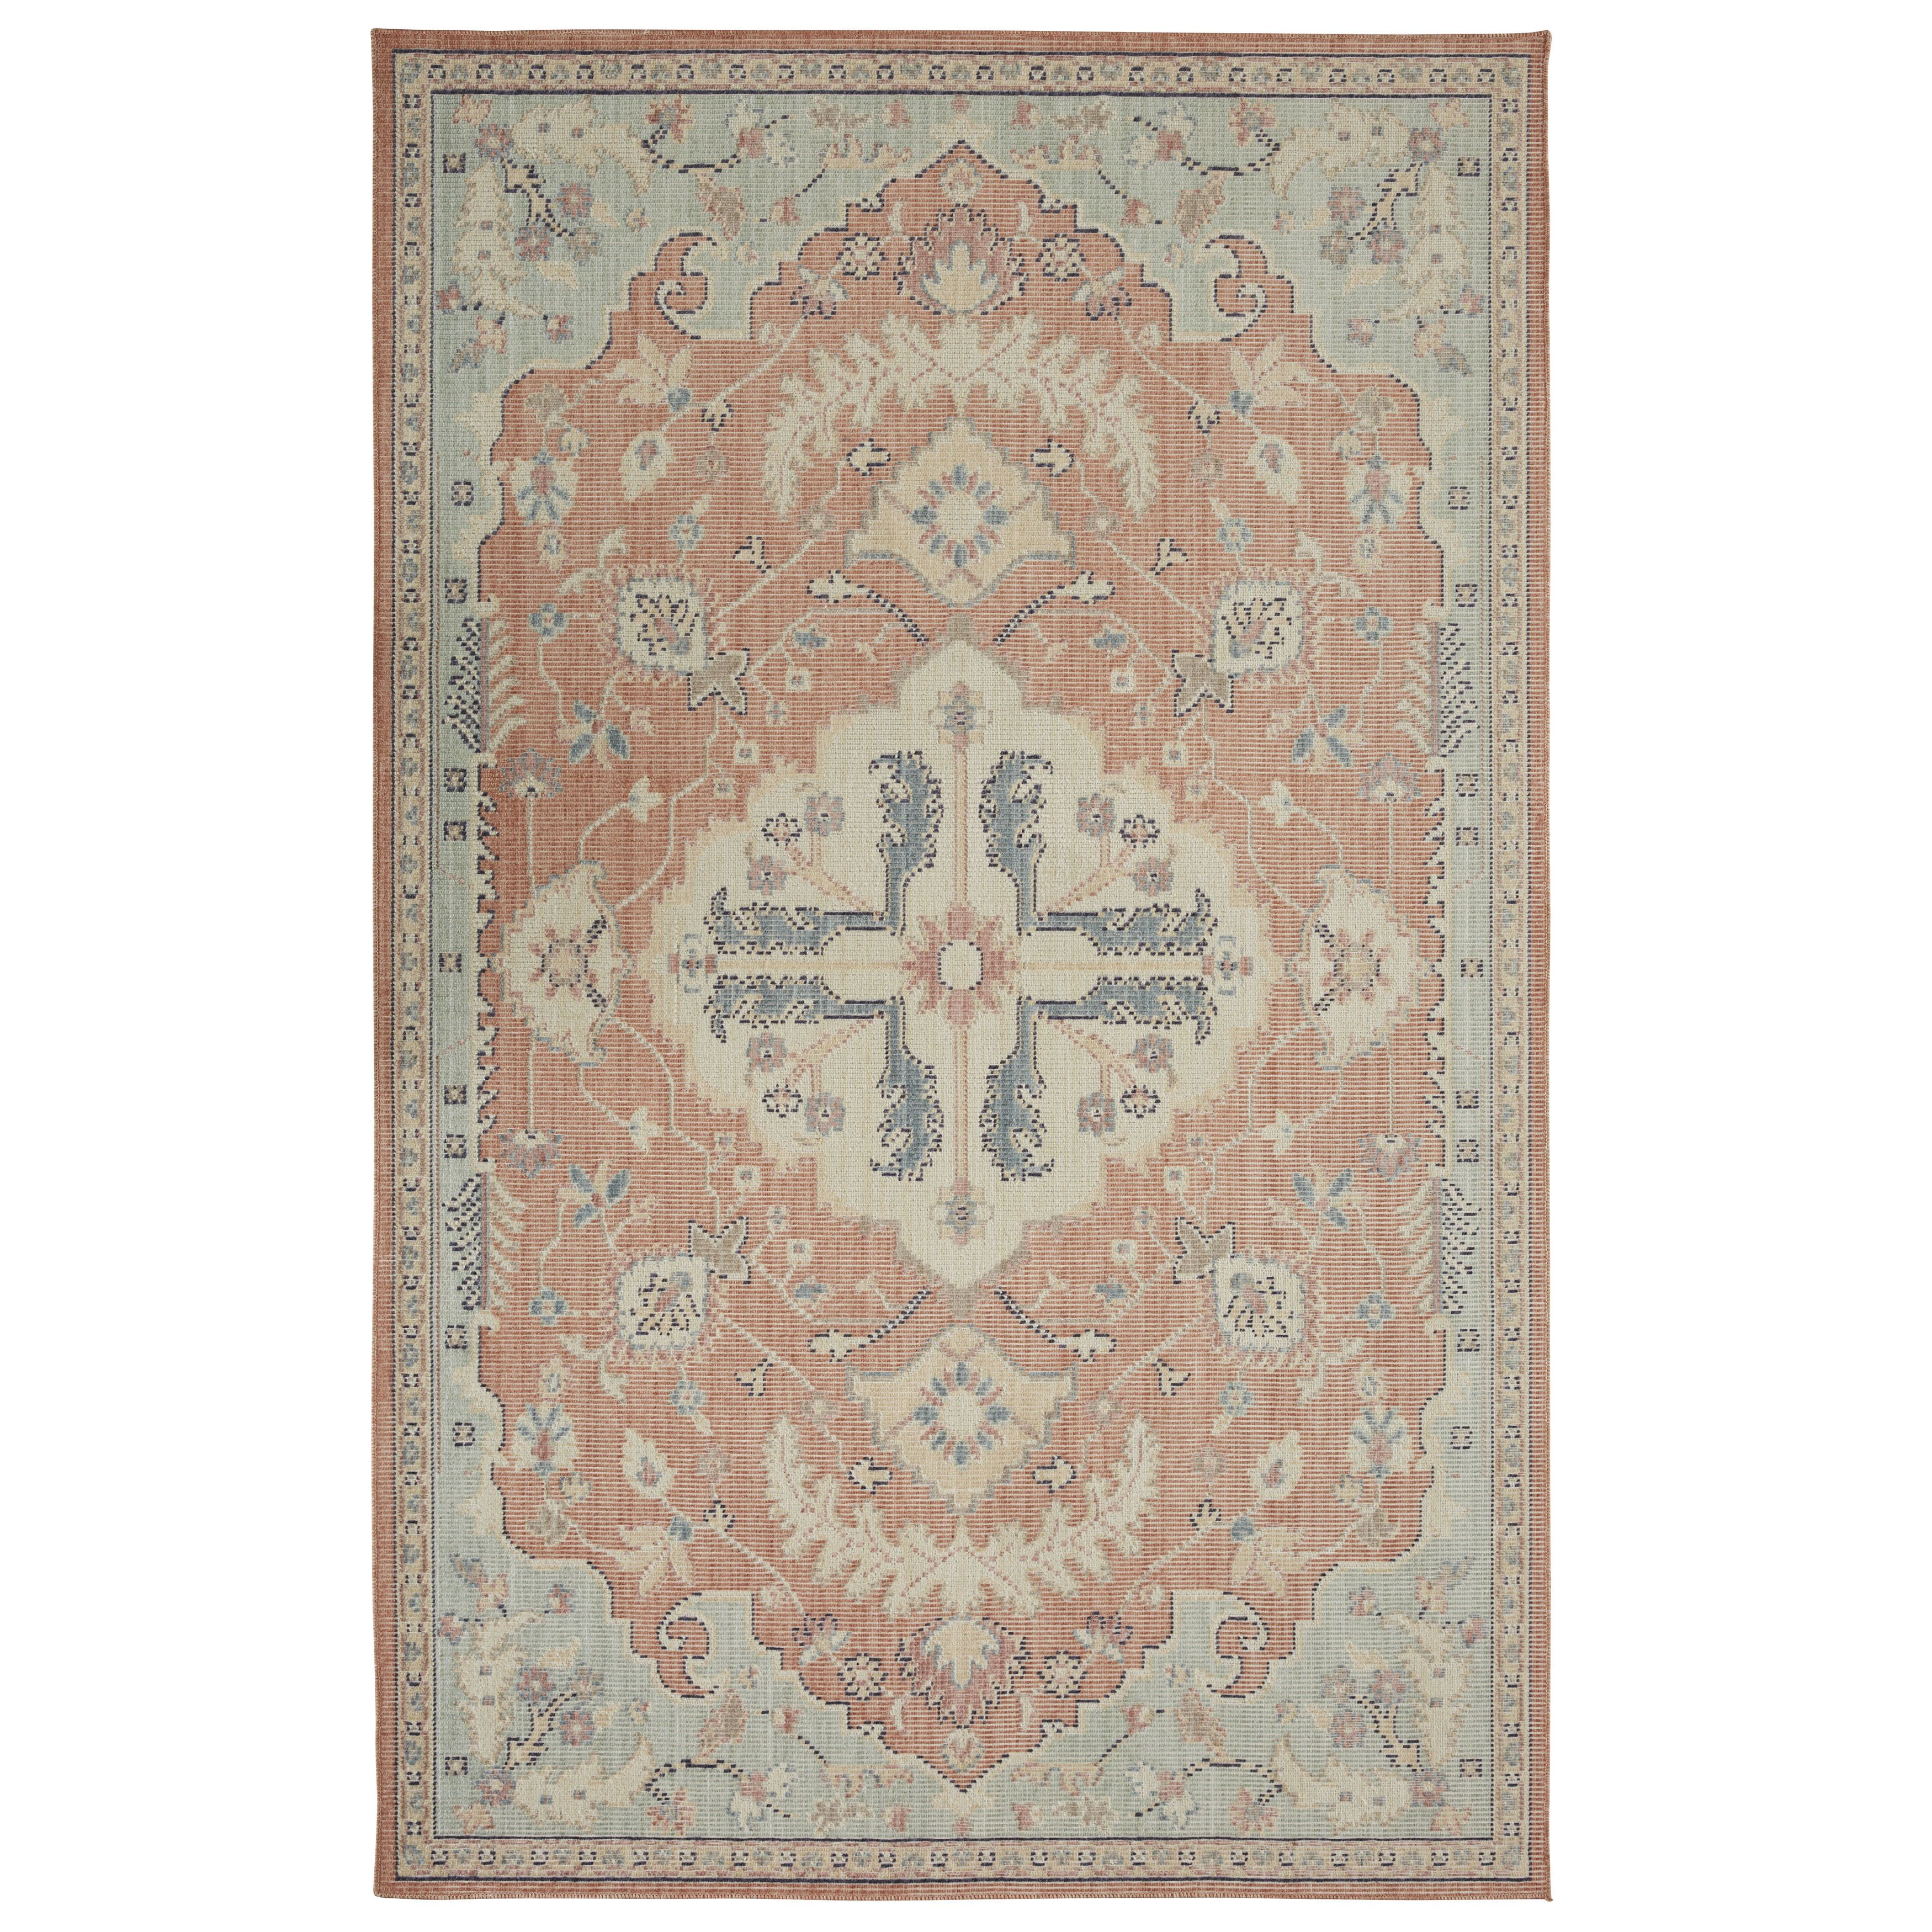 Safavieh Carmel Collection Car272b Vintage Oriental Beige And Brown Area Rug 9 X 12 Rugs Traditional Area Rugs Brown Rug